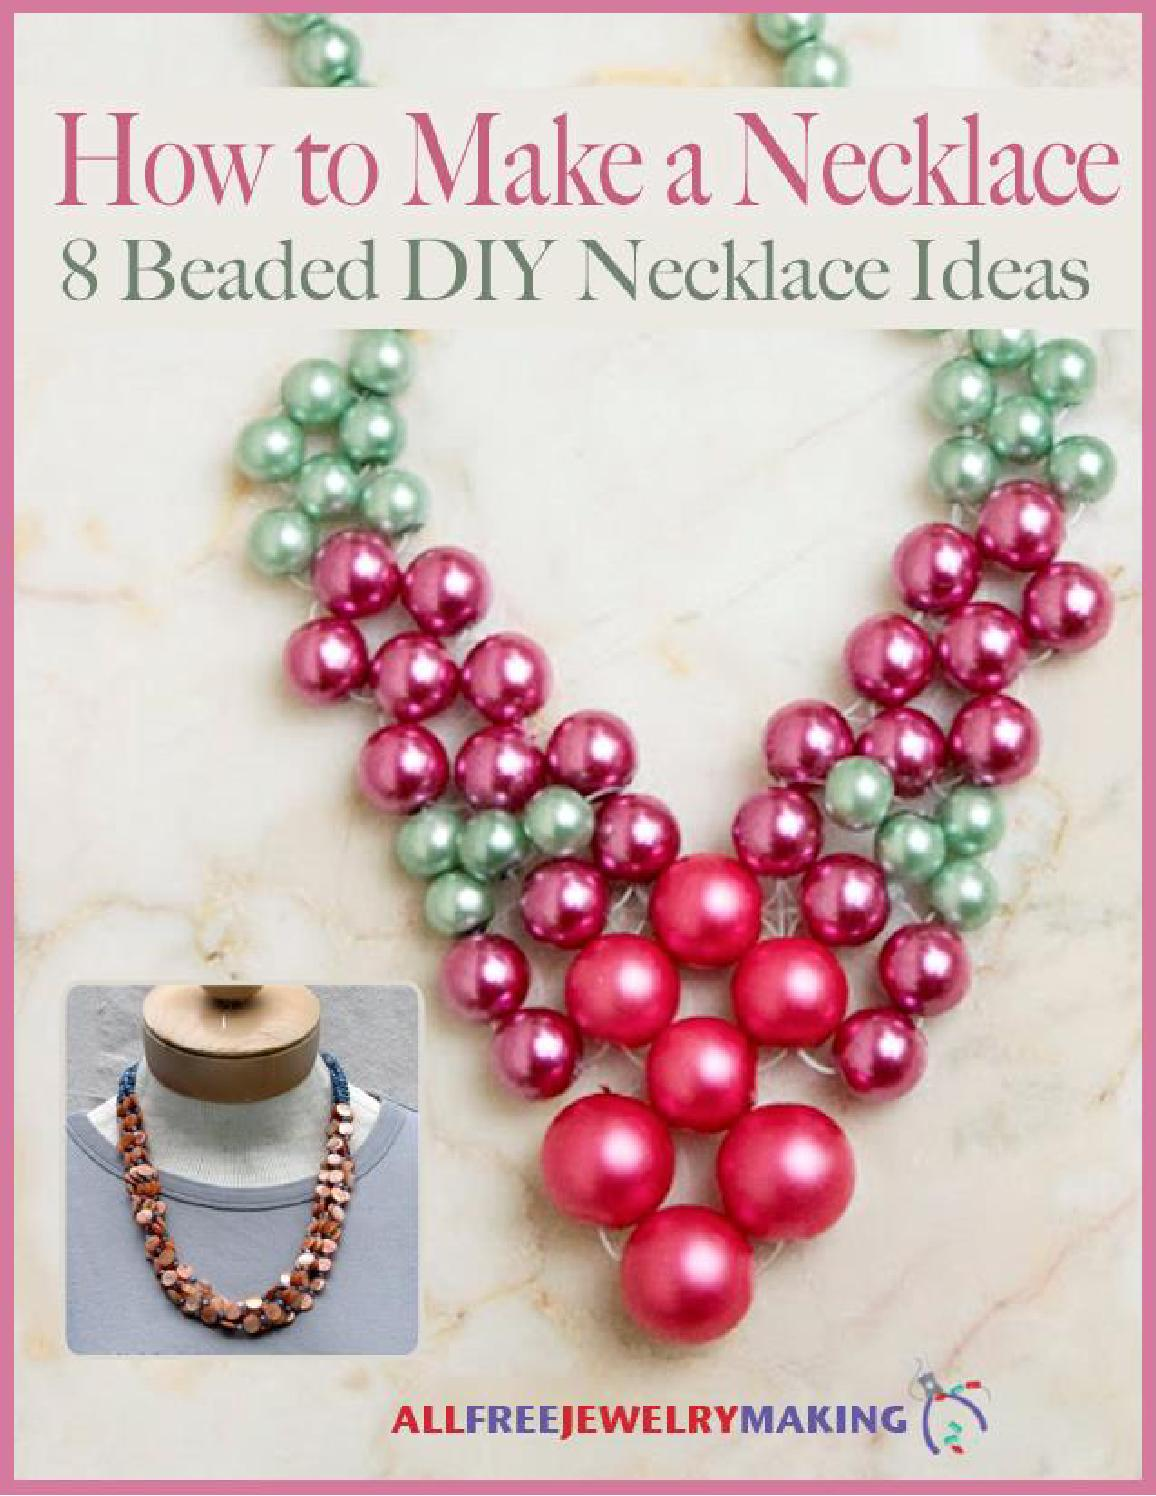 How To Make A Necklace 8 Beaded Diy Ideas Free Ebook By